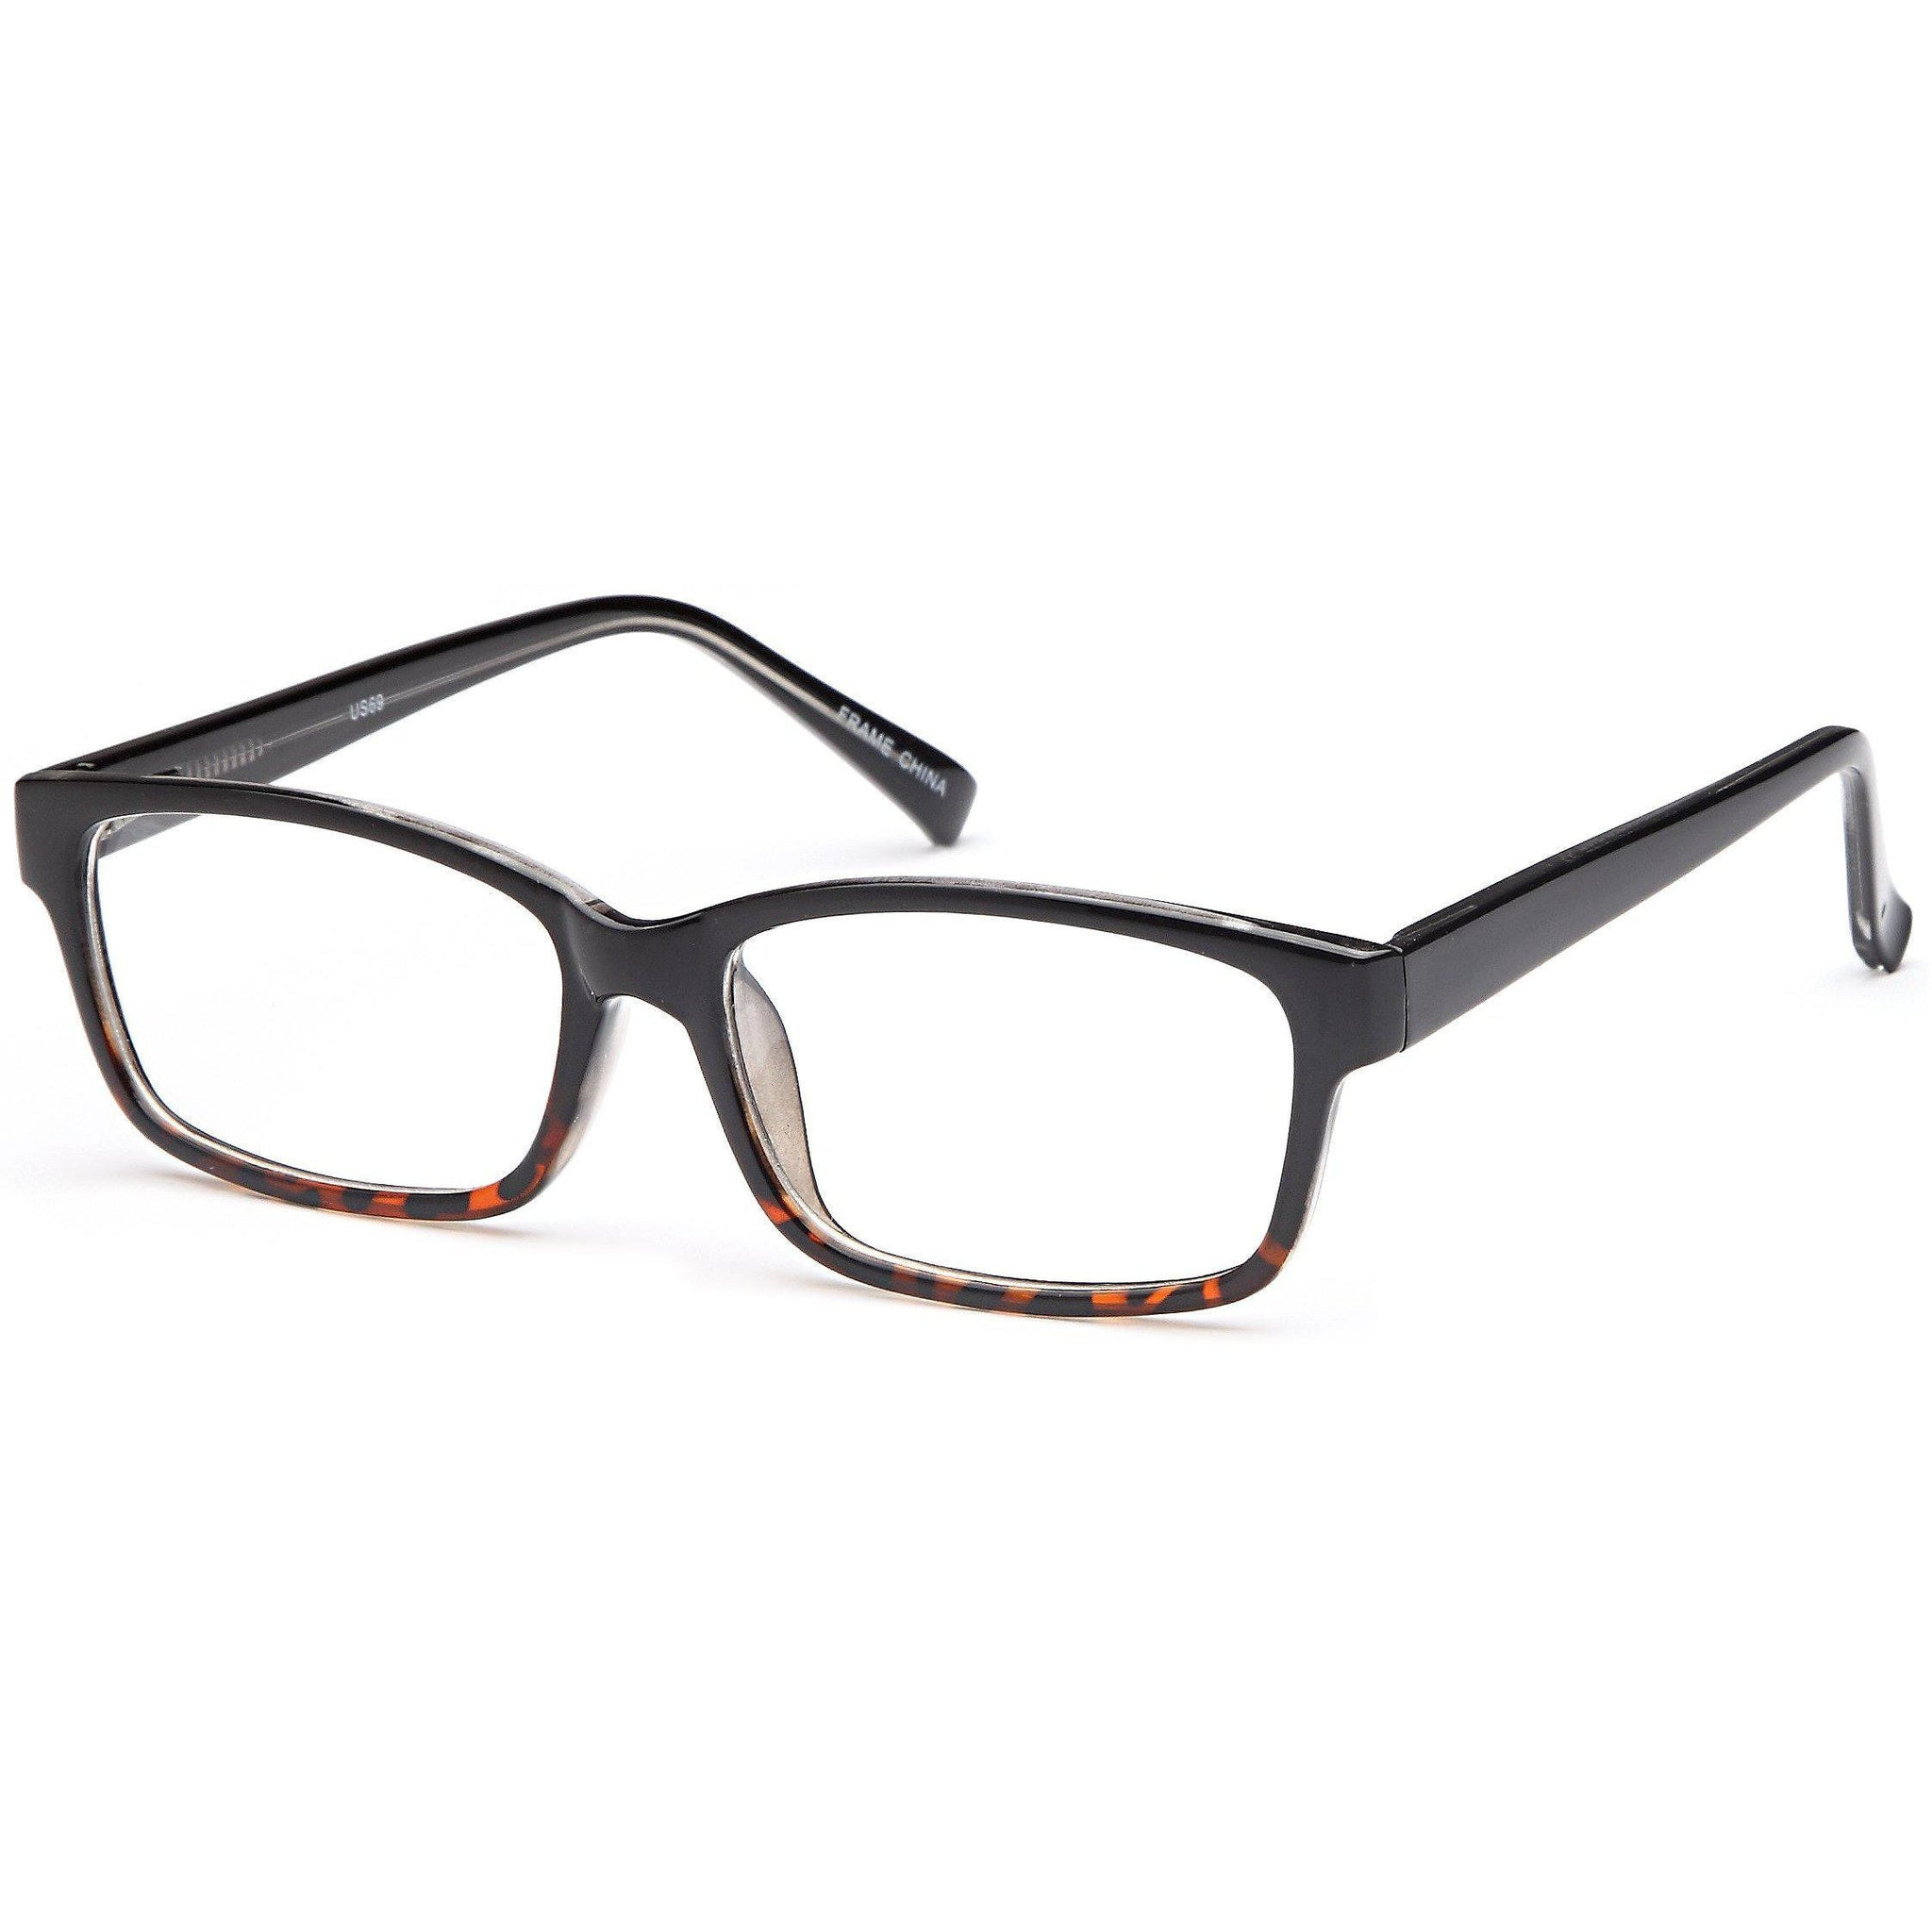 4U Prescription Glasses US 69 Optical Eyeglasses Frame - timetoshade